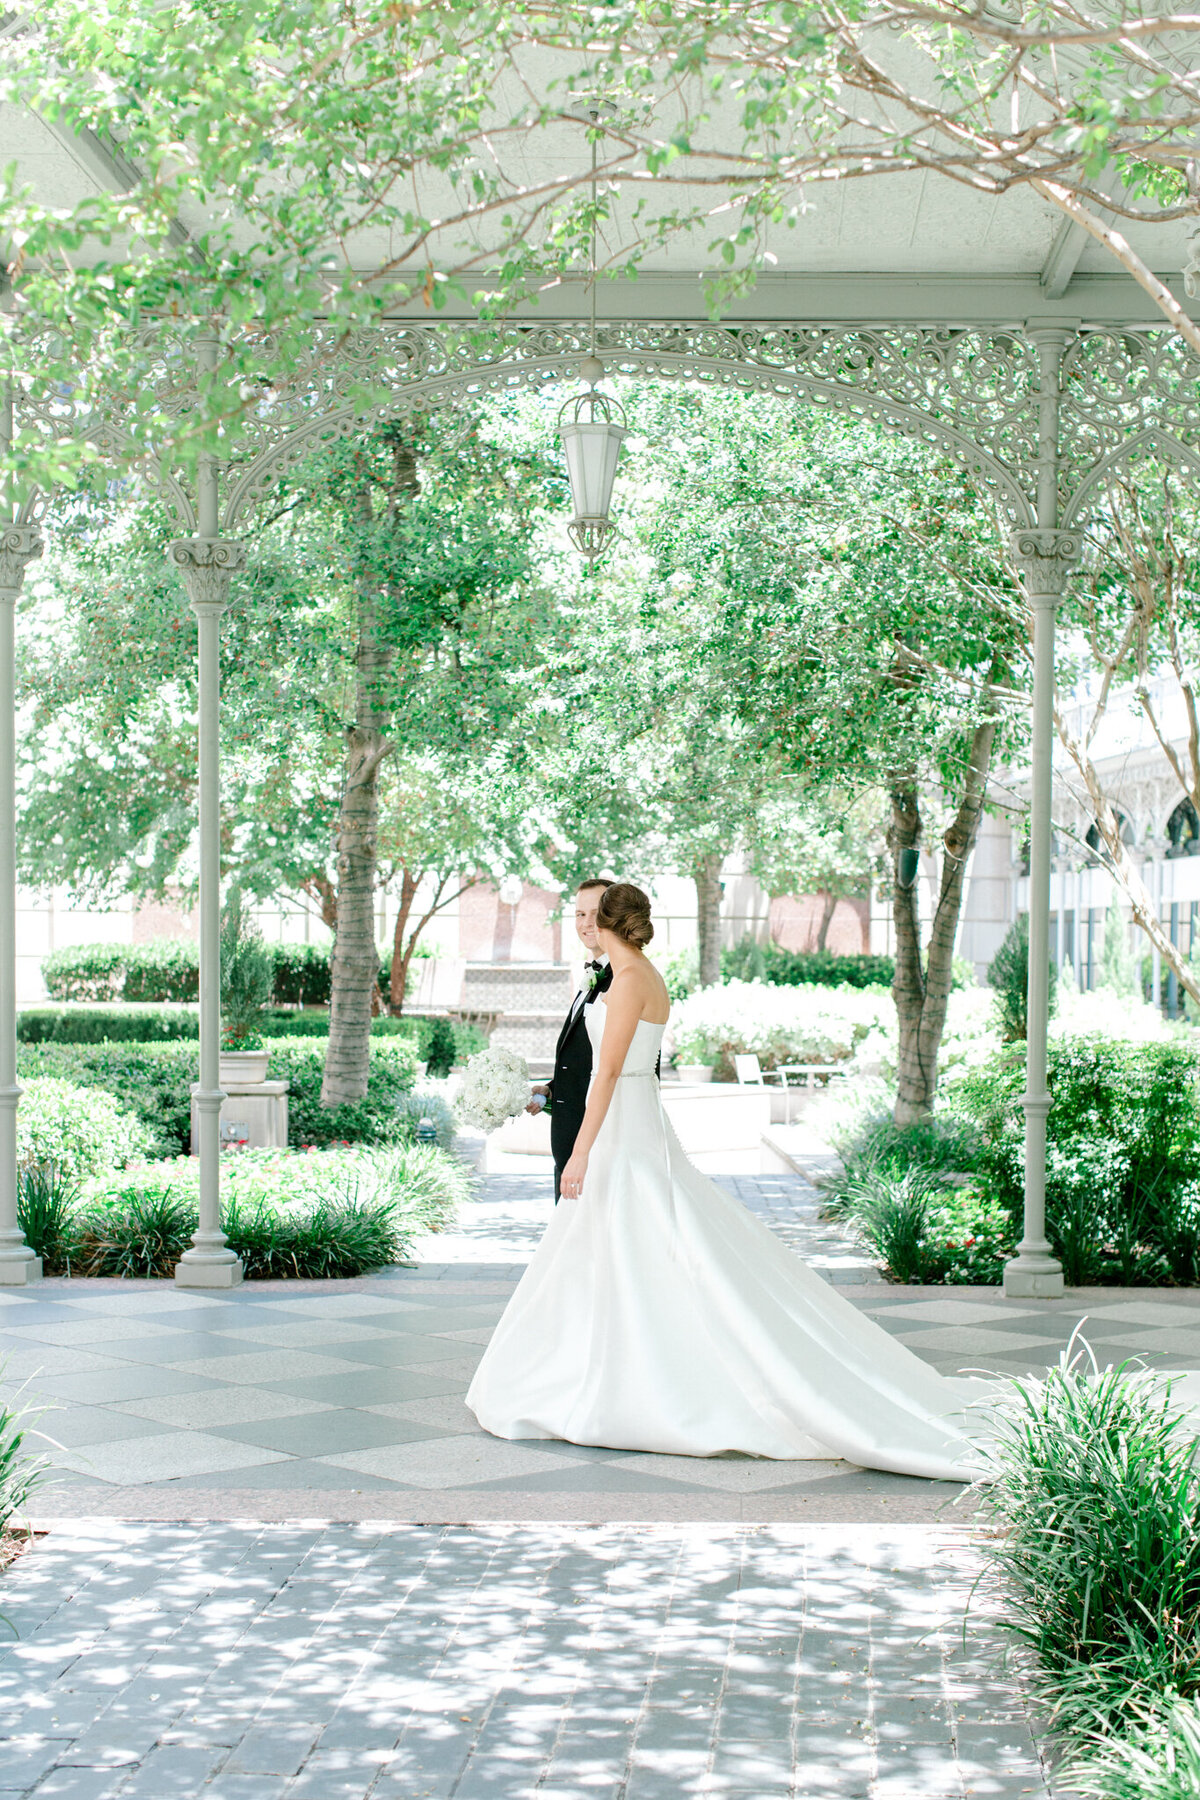 Wedding at the Crescent Court Hotel and Highland Park United Methodist Church in Dallas | Sami Kathryn Photography | DFW Wedding Photographer-63